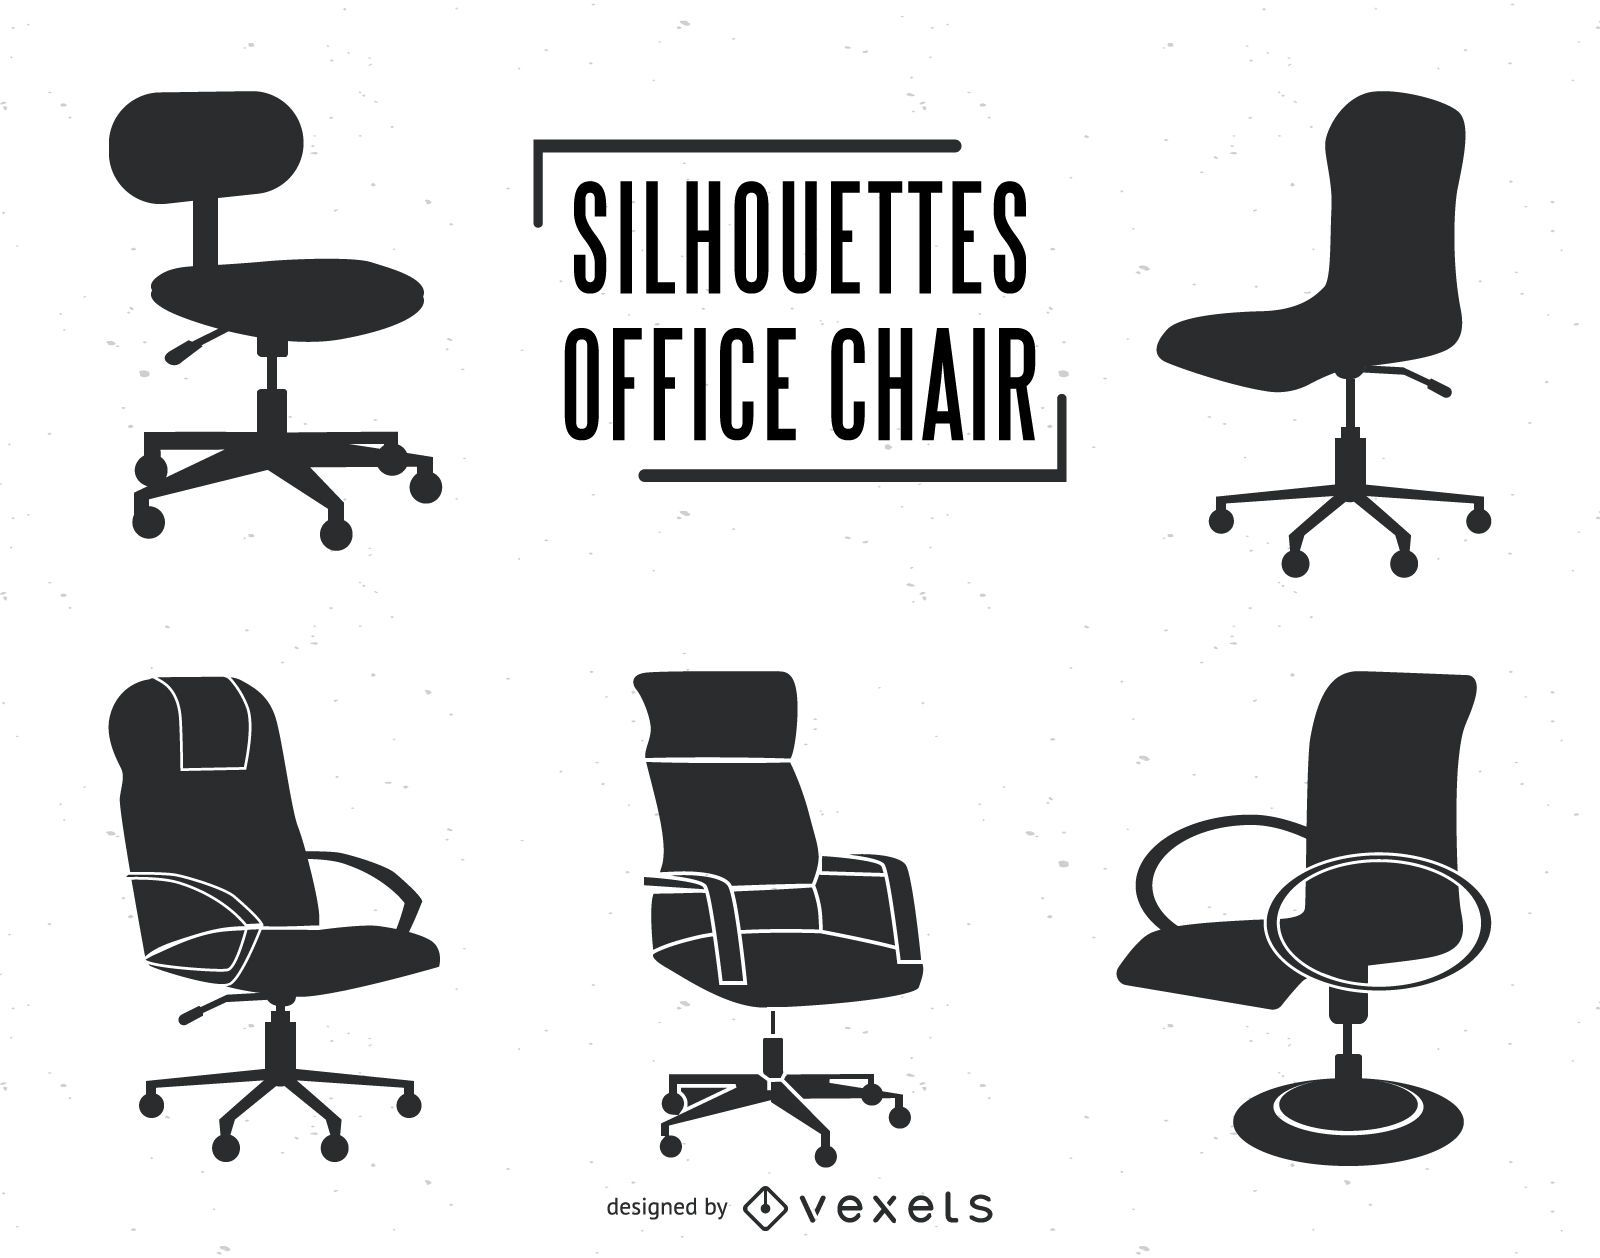 swivel chair em portugues bedroom accent office silhouettes set vector download